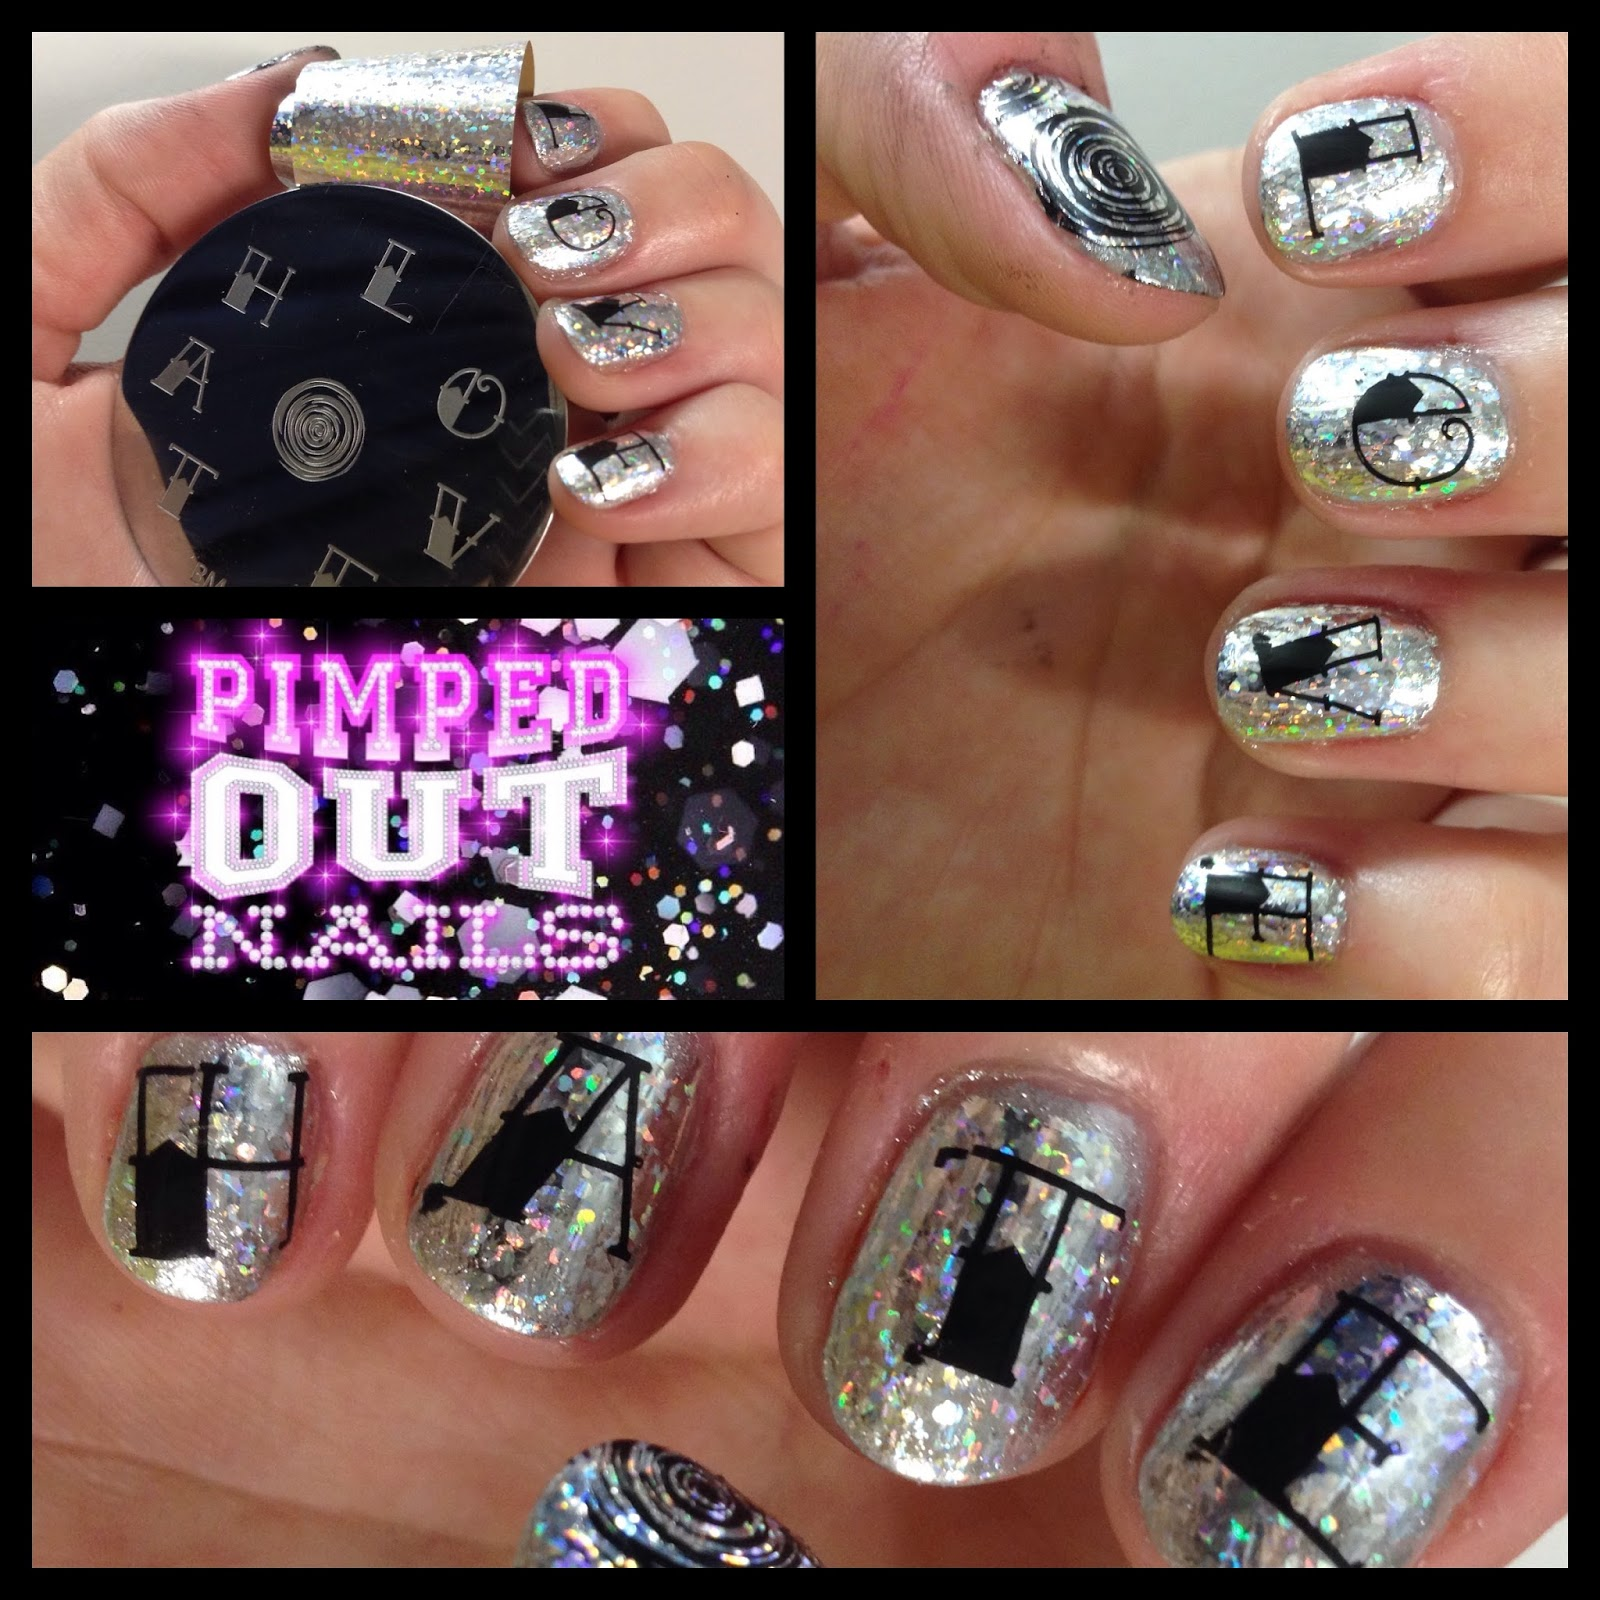 Pimped Out Nails